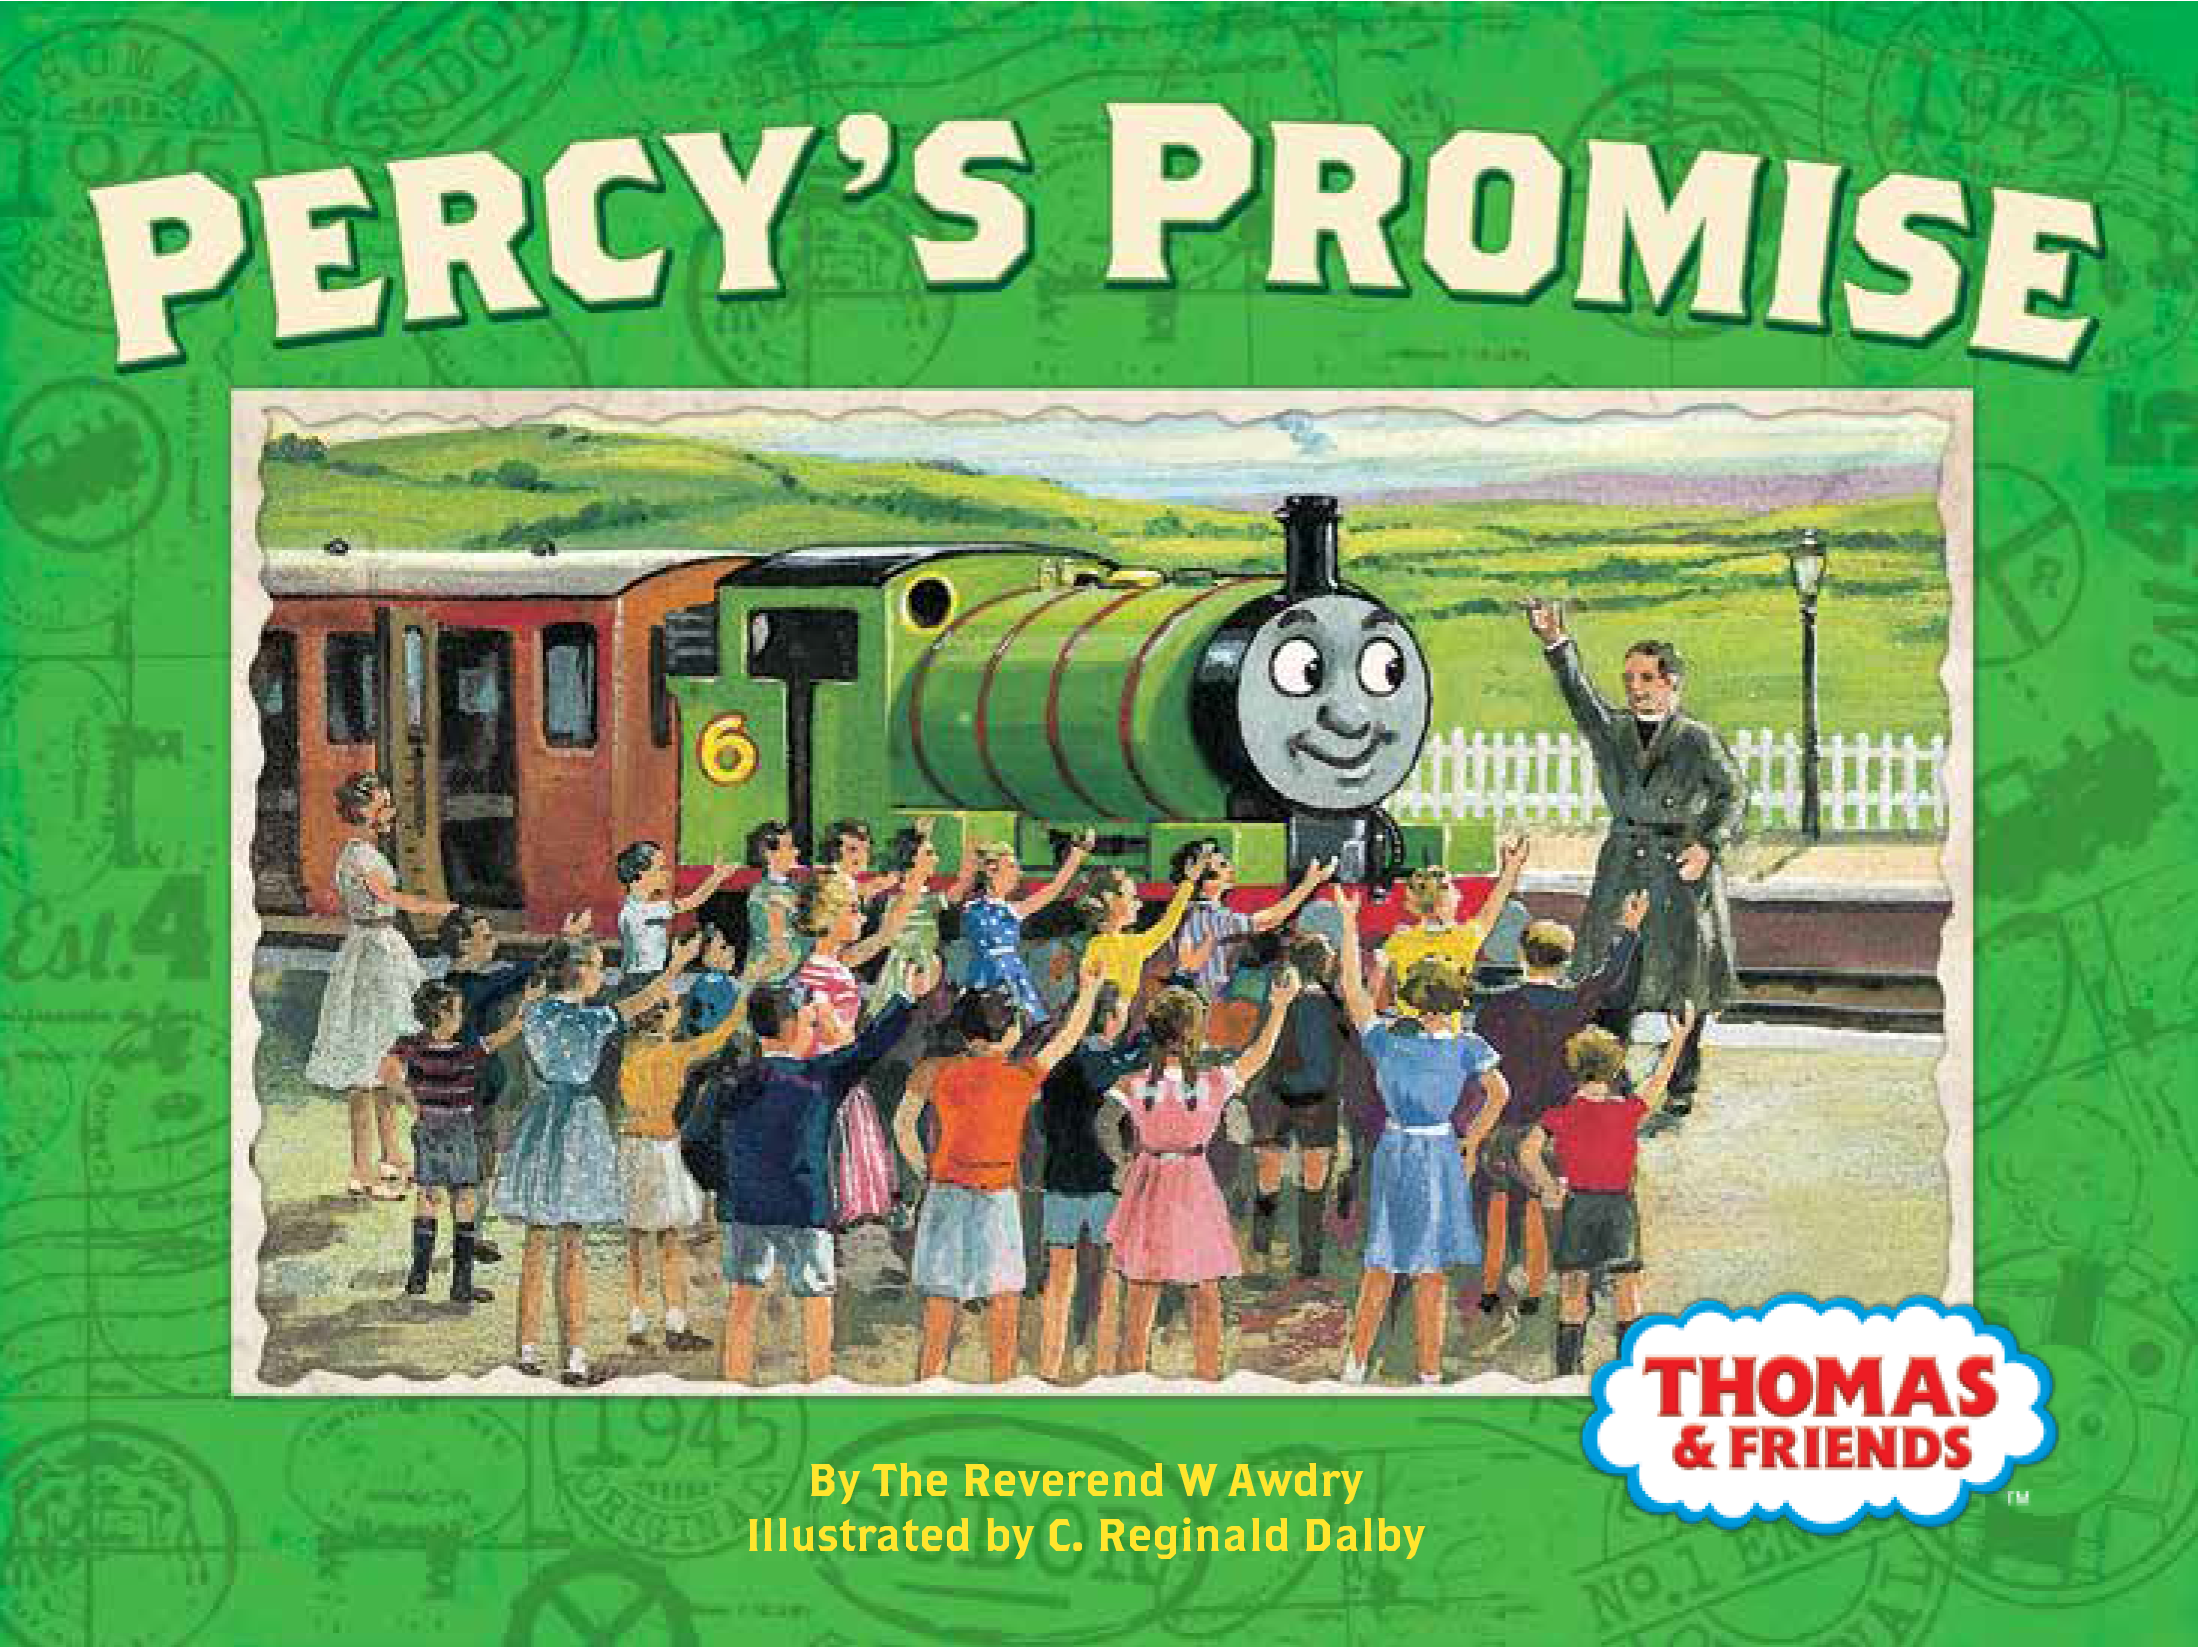 Percy's Promise (book)